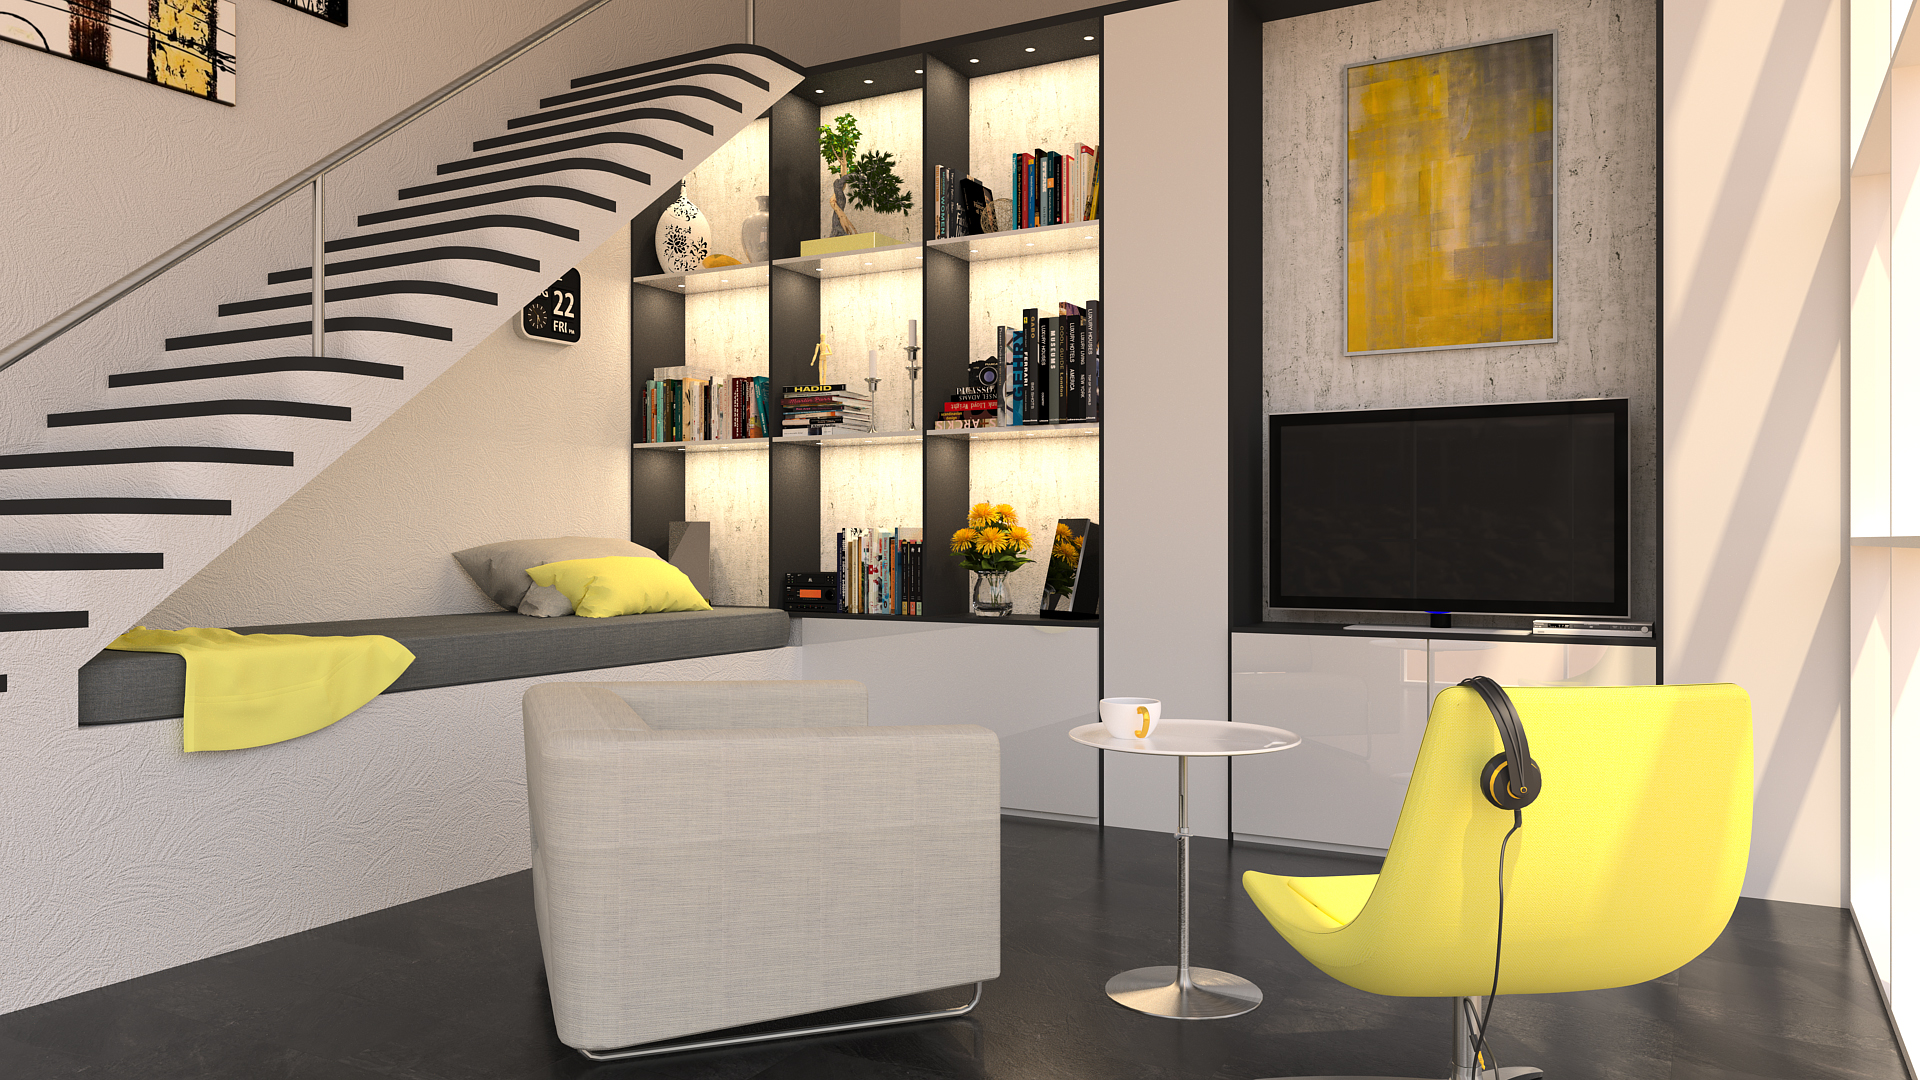 Render of a Decorated Living Room